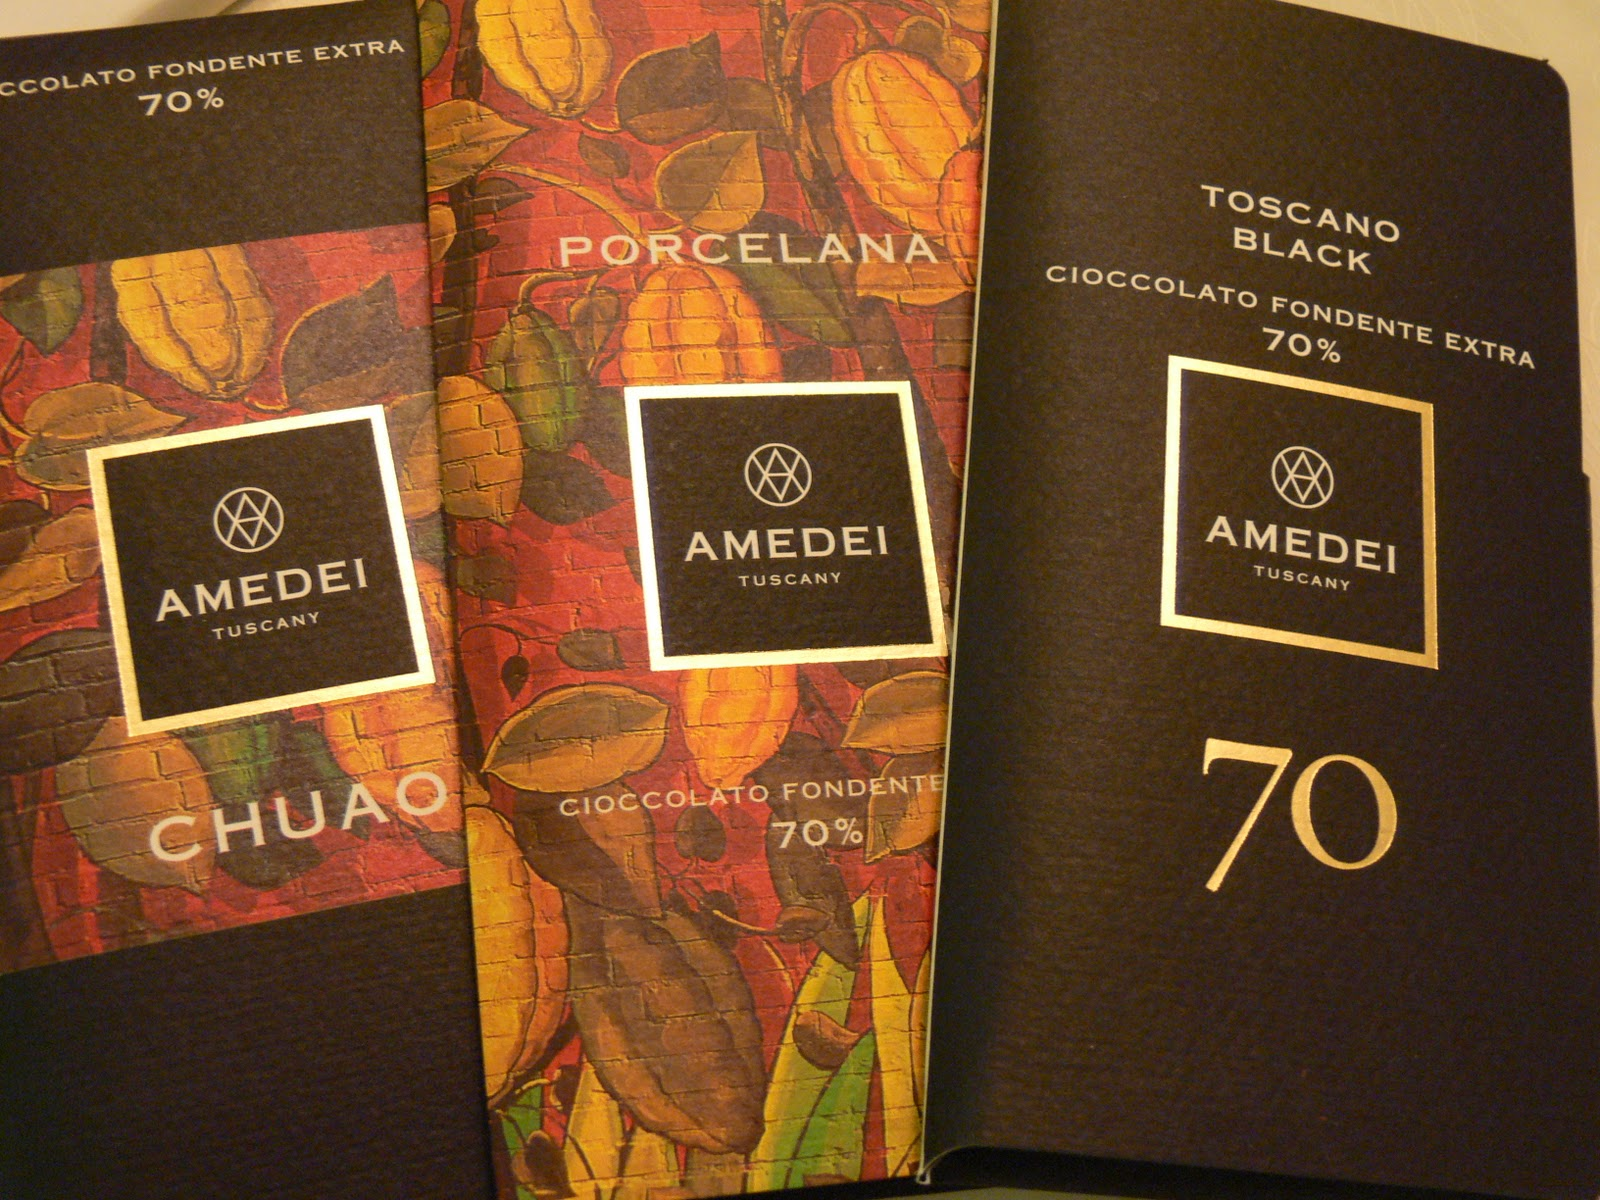 Image Gallery of Expensive Chocolate Bar